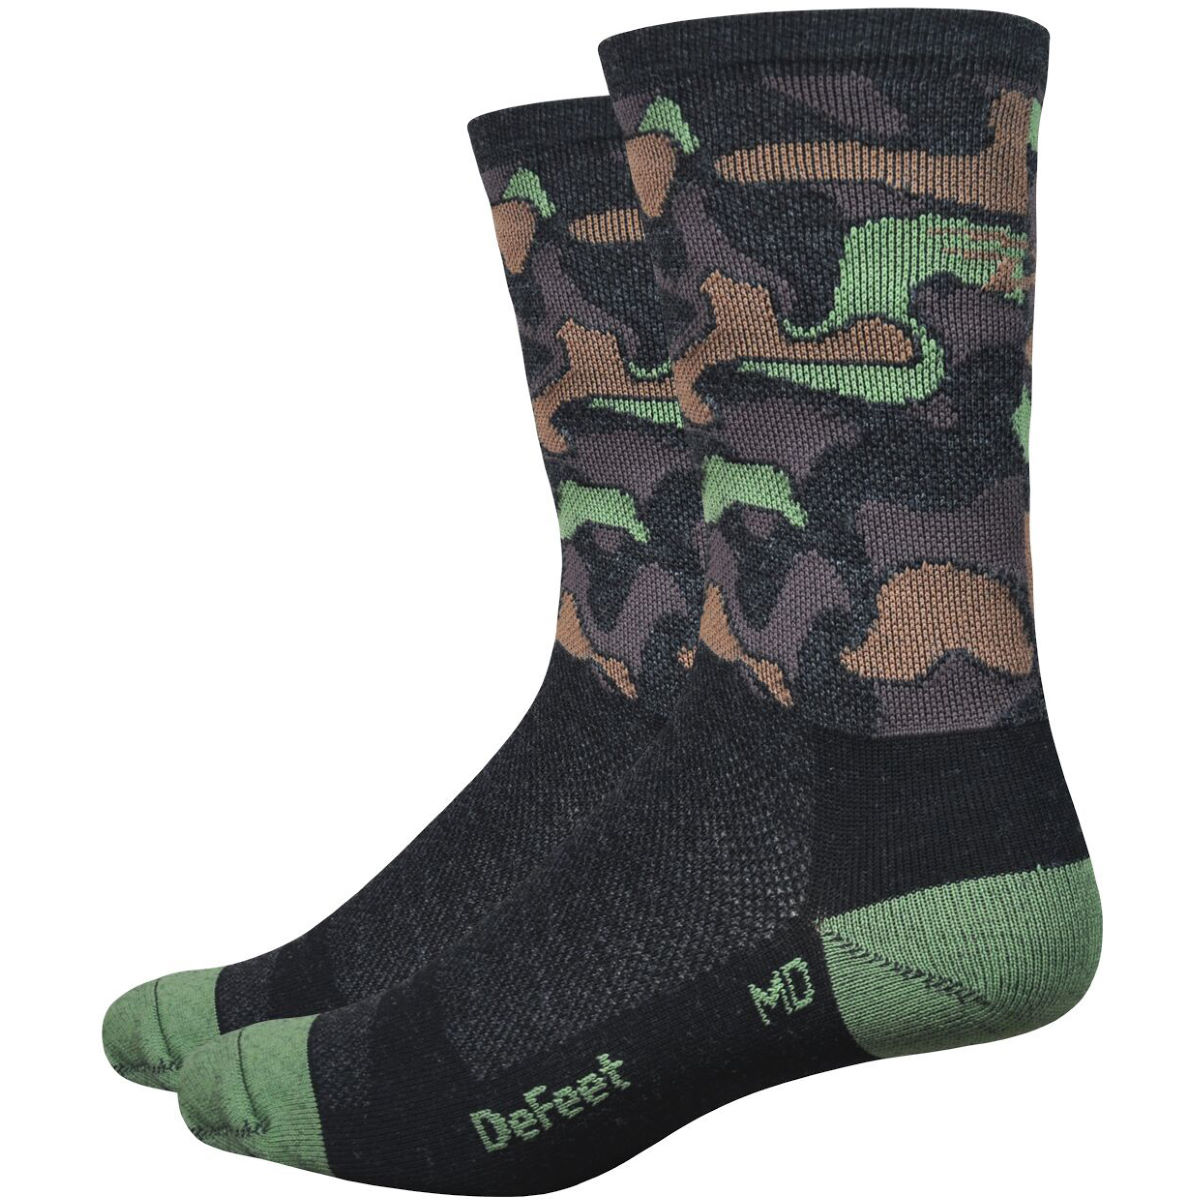 Chaussettes DeFeet Wooleator Camo (15 cm environ) - M Chair